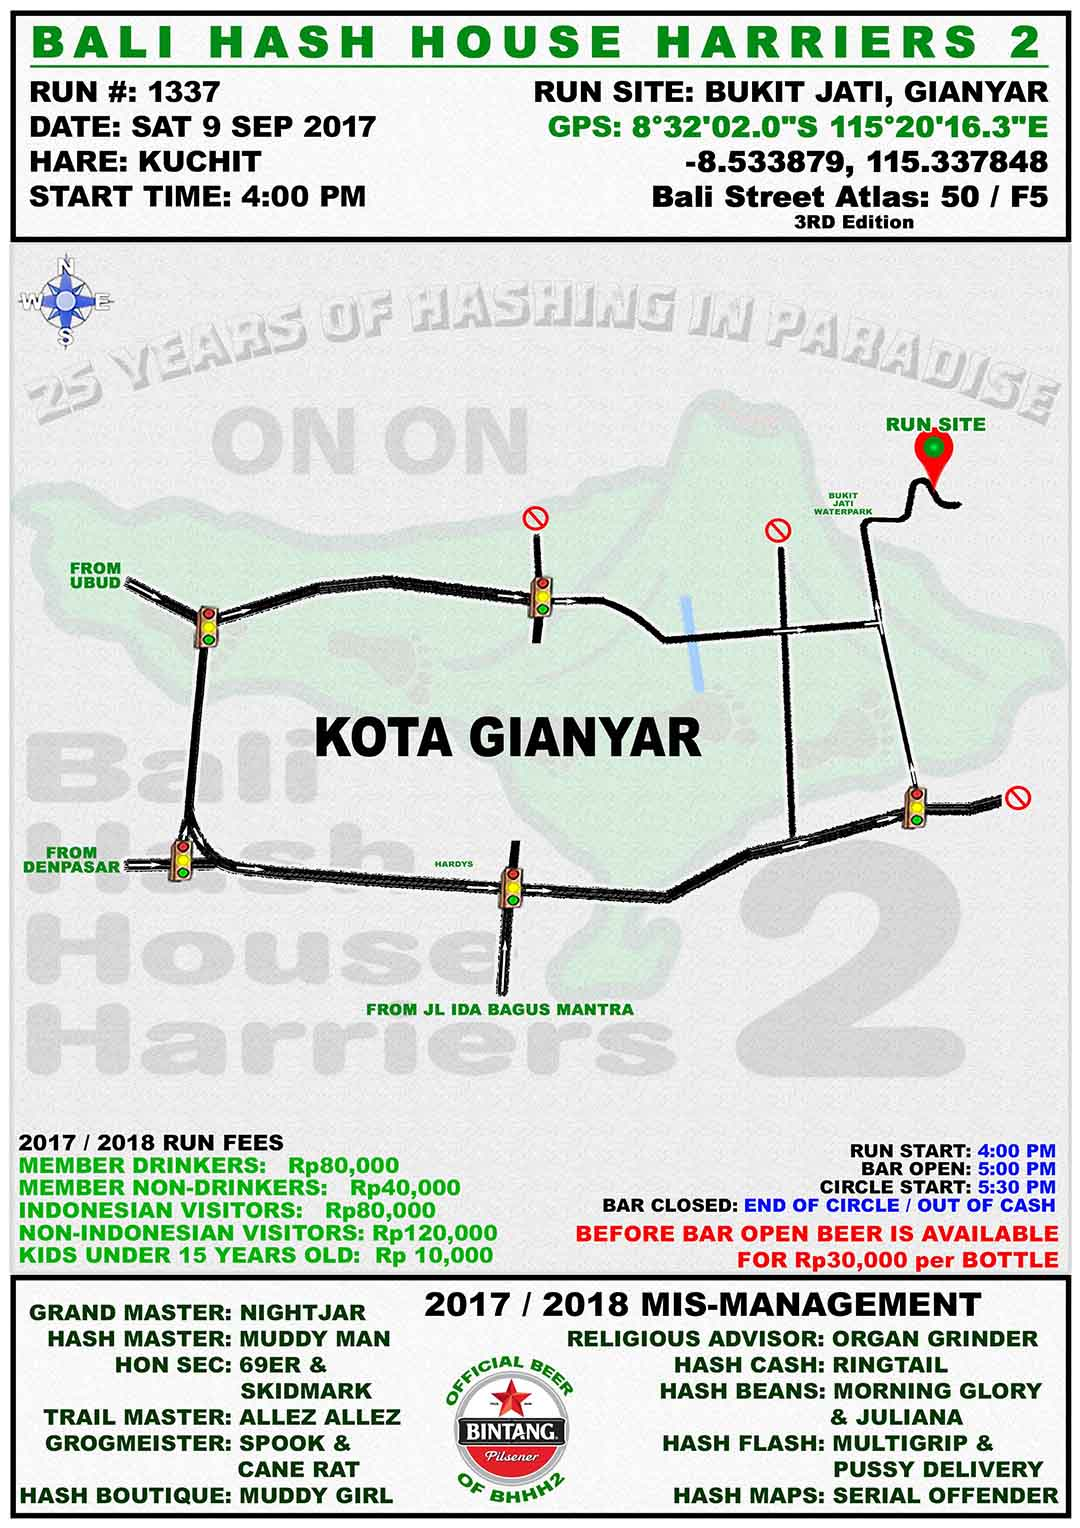 BHHH2 Run 1337 Bukit Jati Gianyar 9-Sep-17